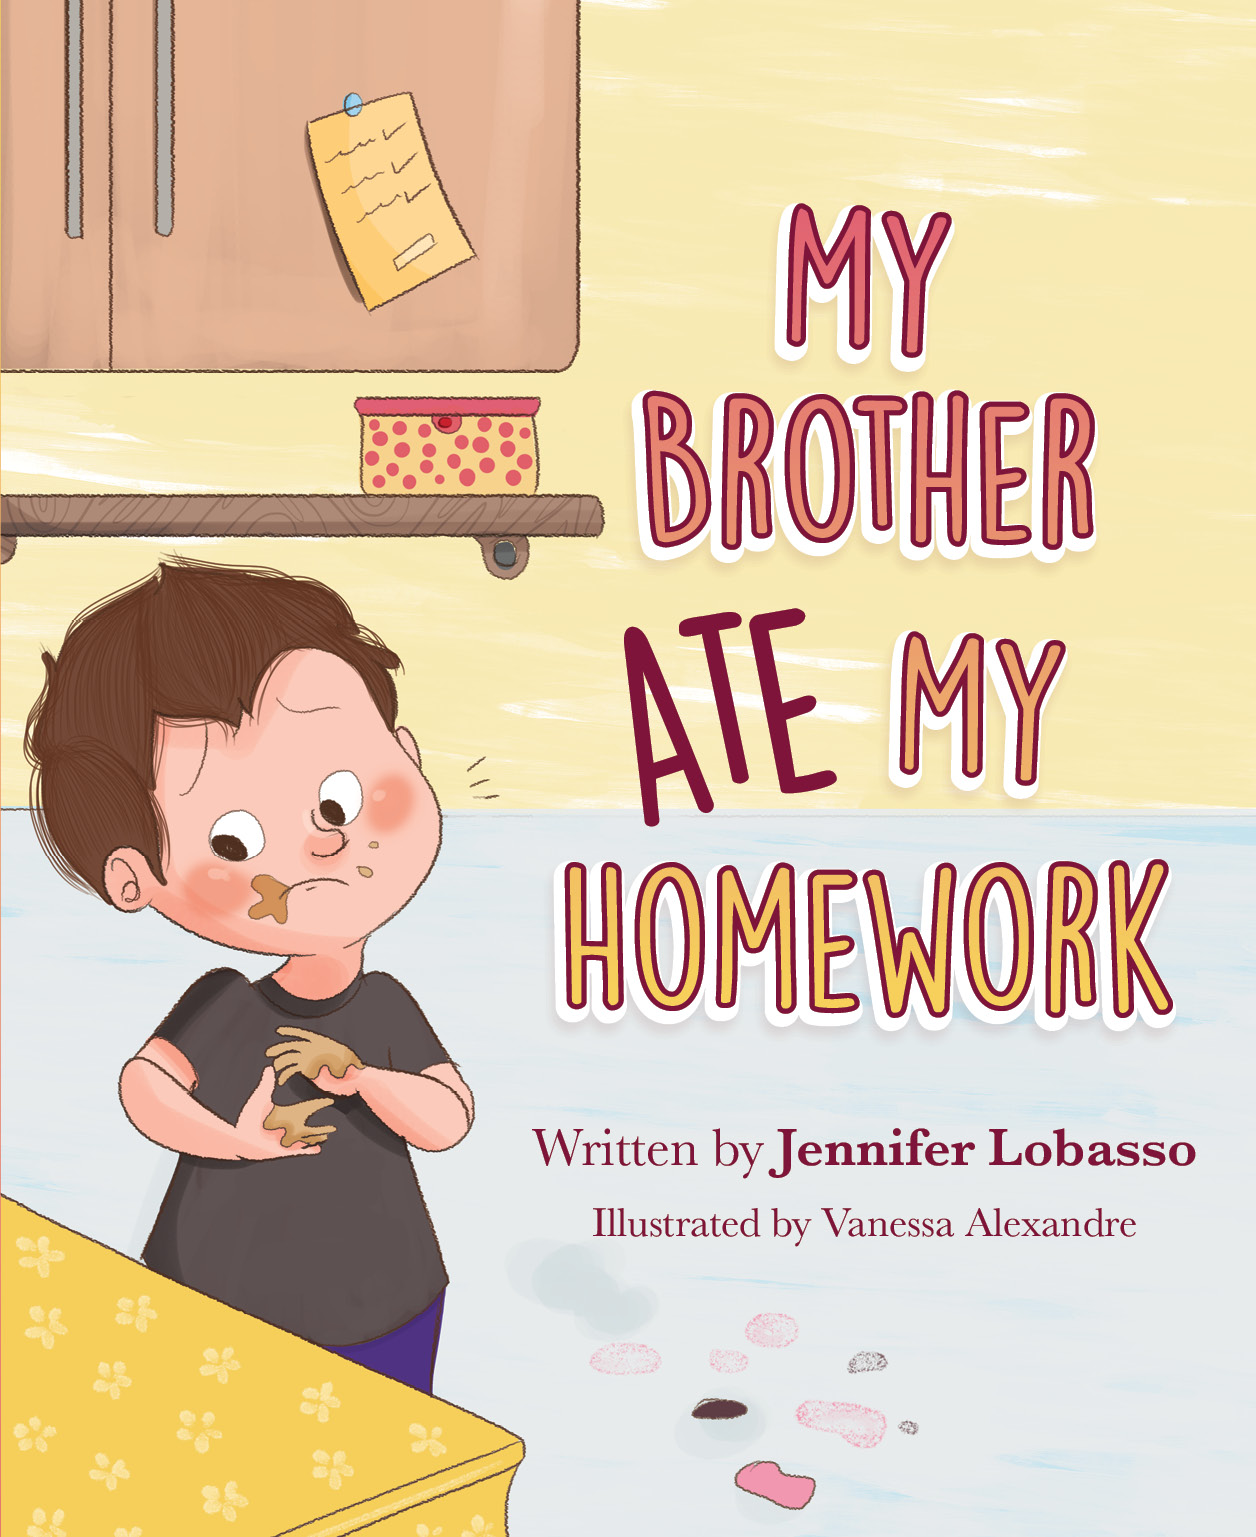 MyBrotherAteMyHomework_Amazon